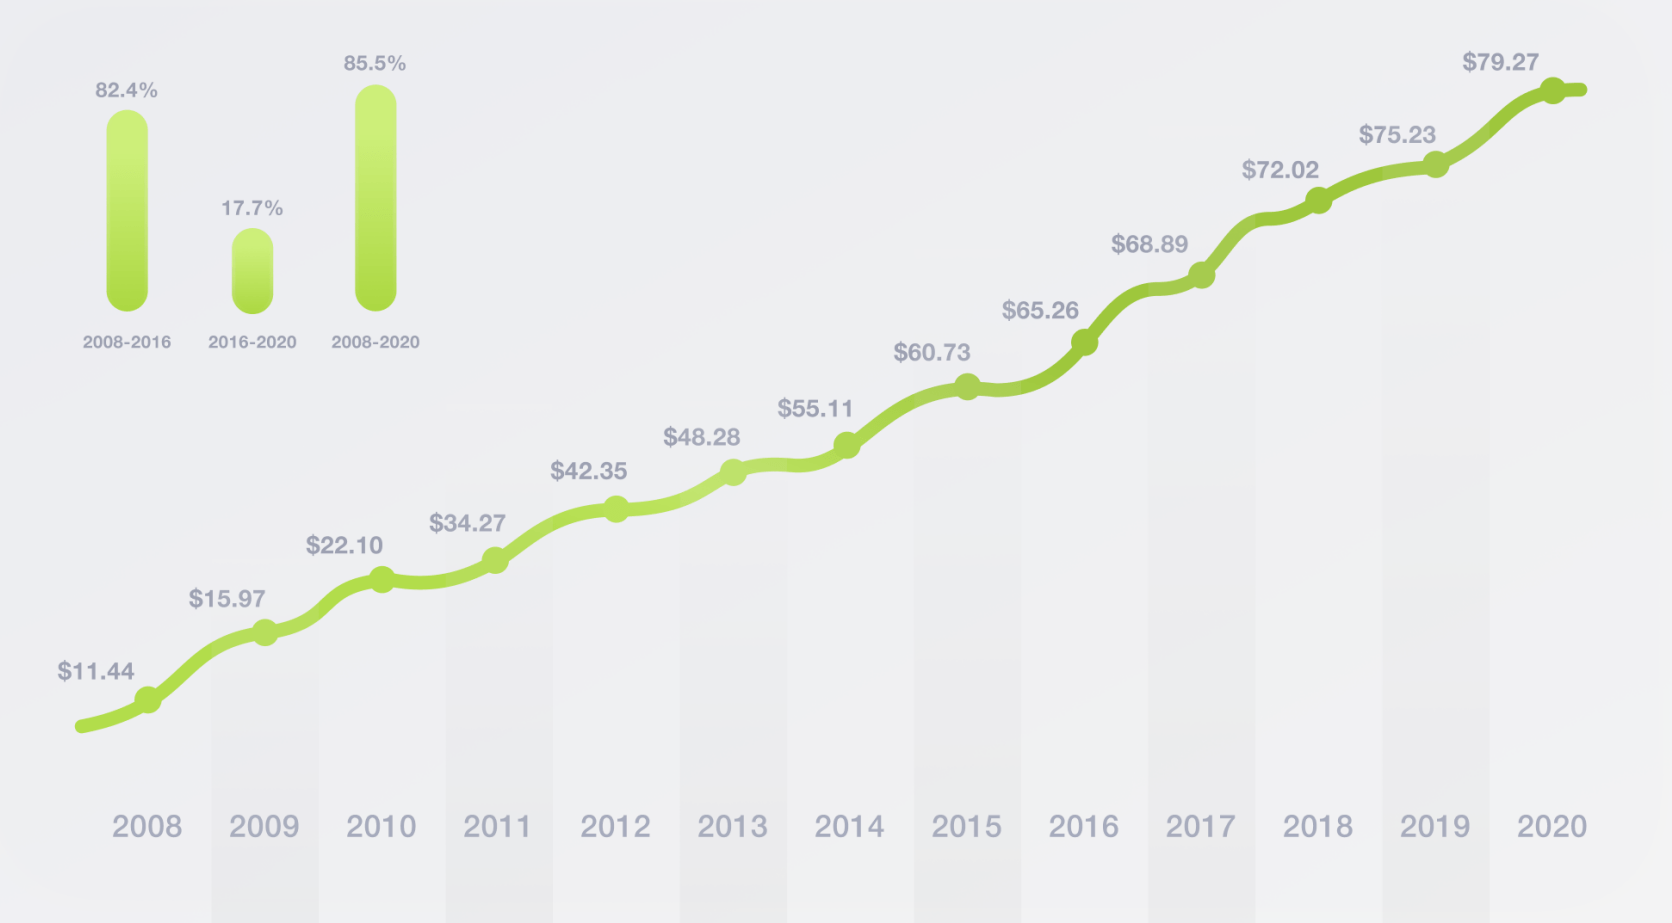 Total spending on SEO in the US (2008 - 2020)